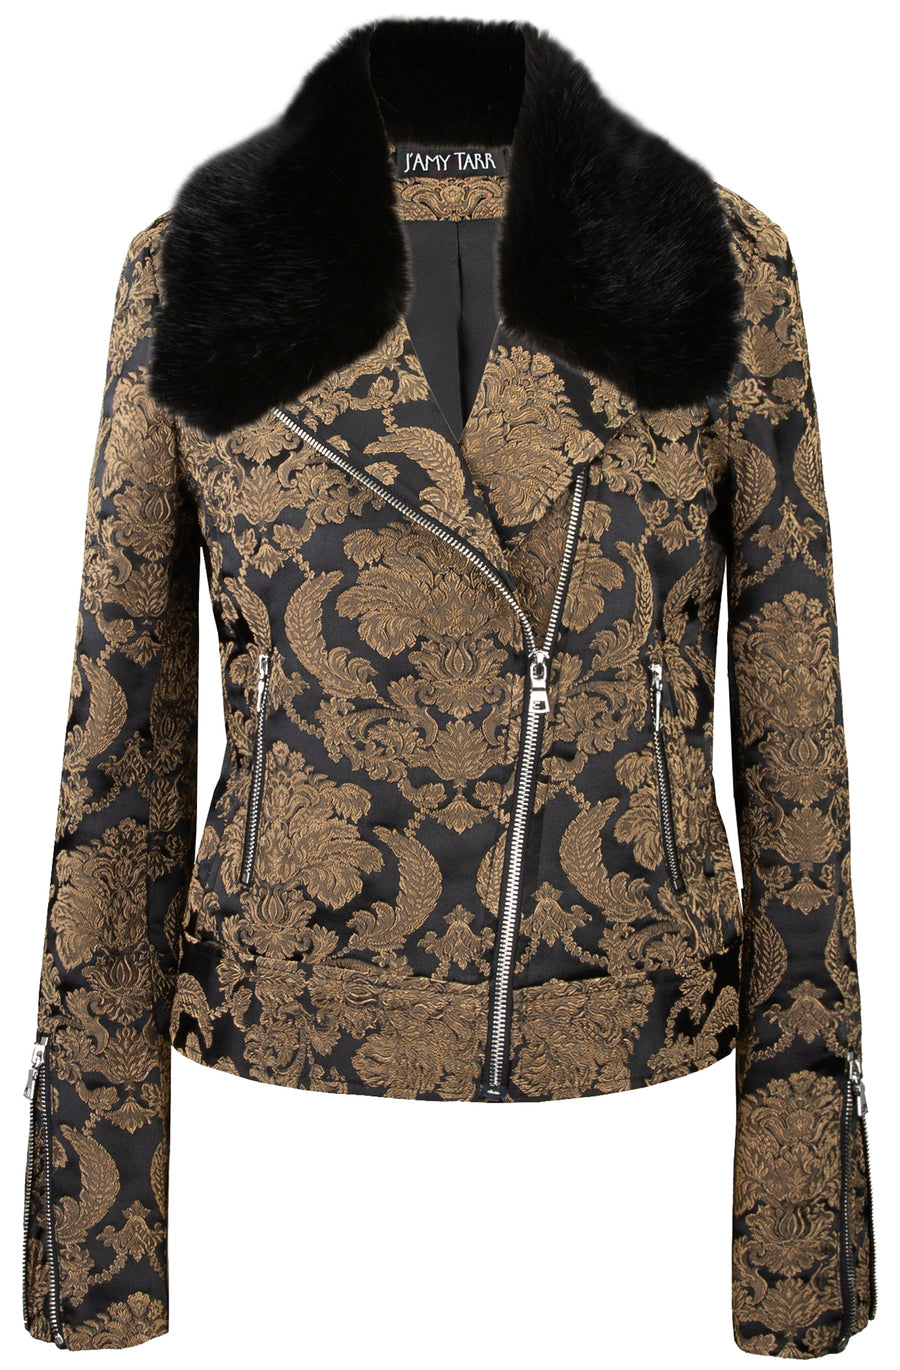 Imperial Brocade Biker Jacket w/ removable faux fur collar